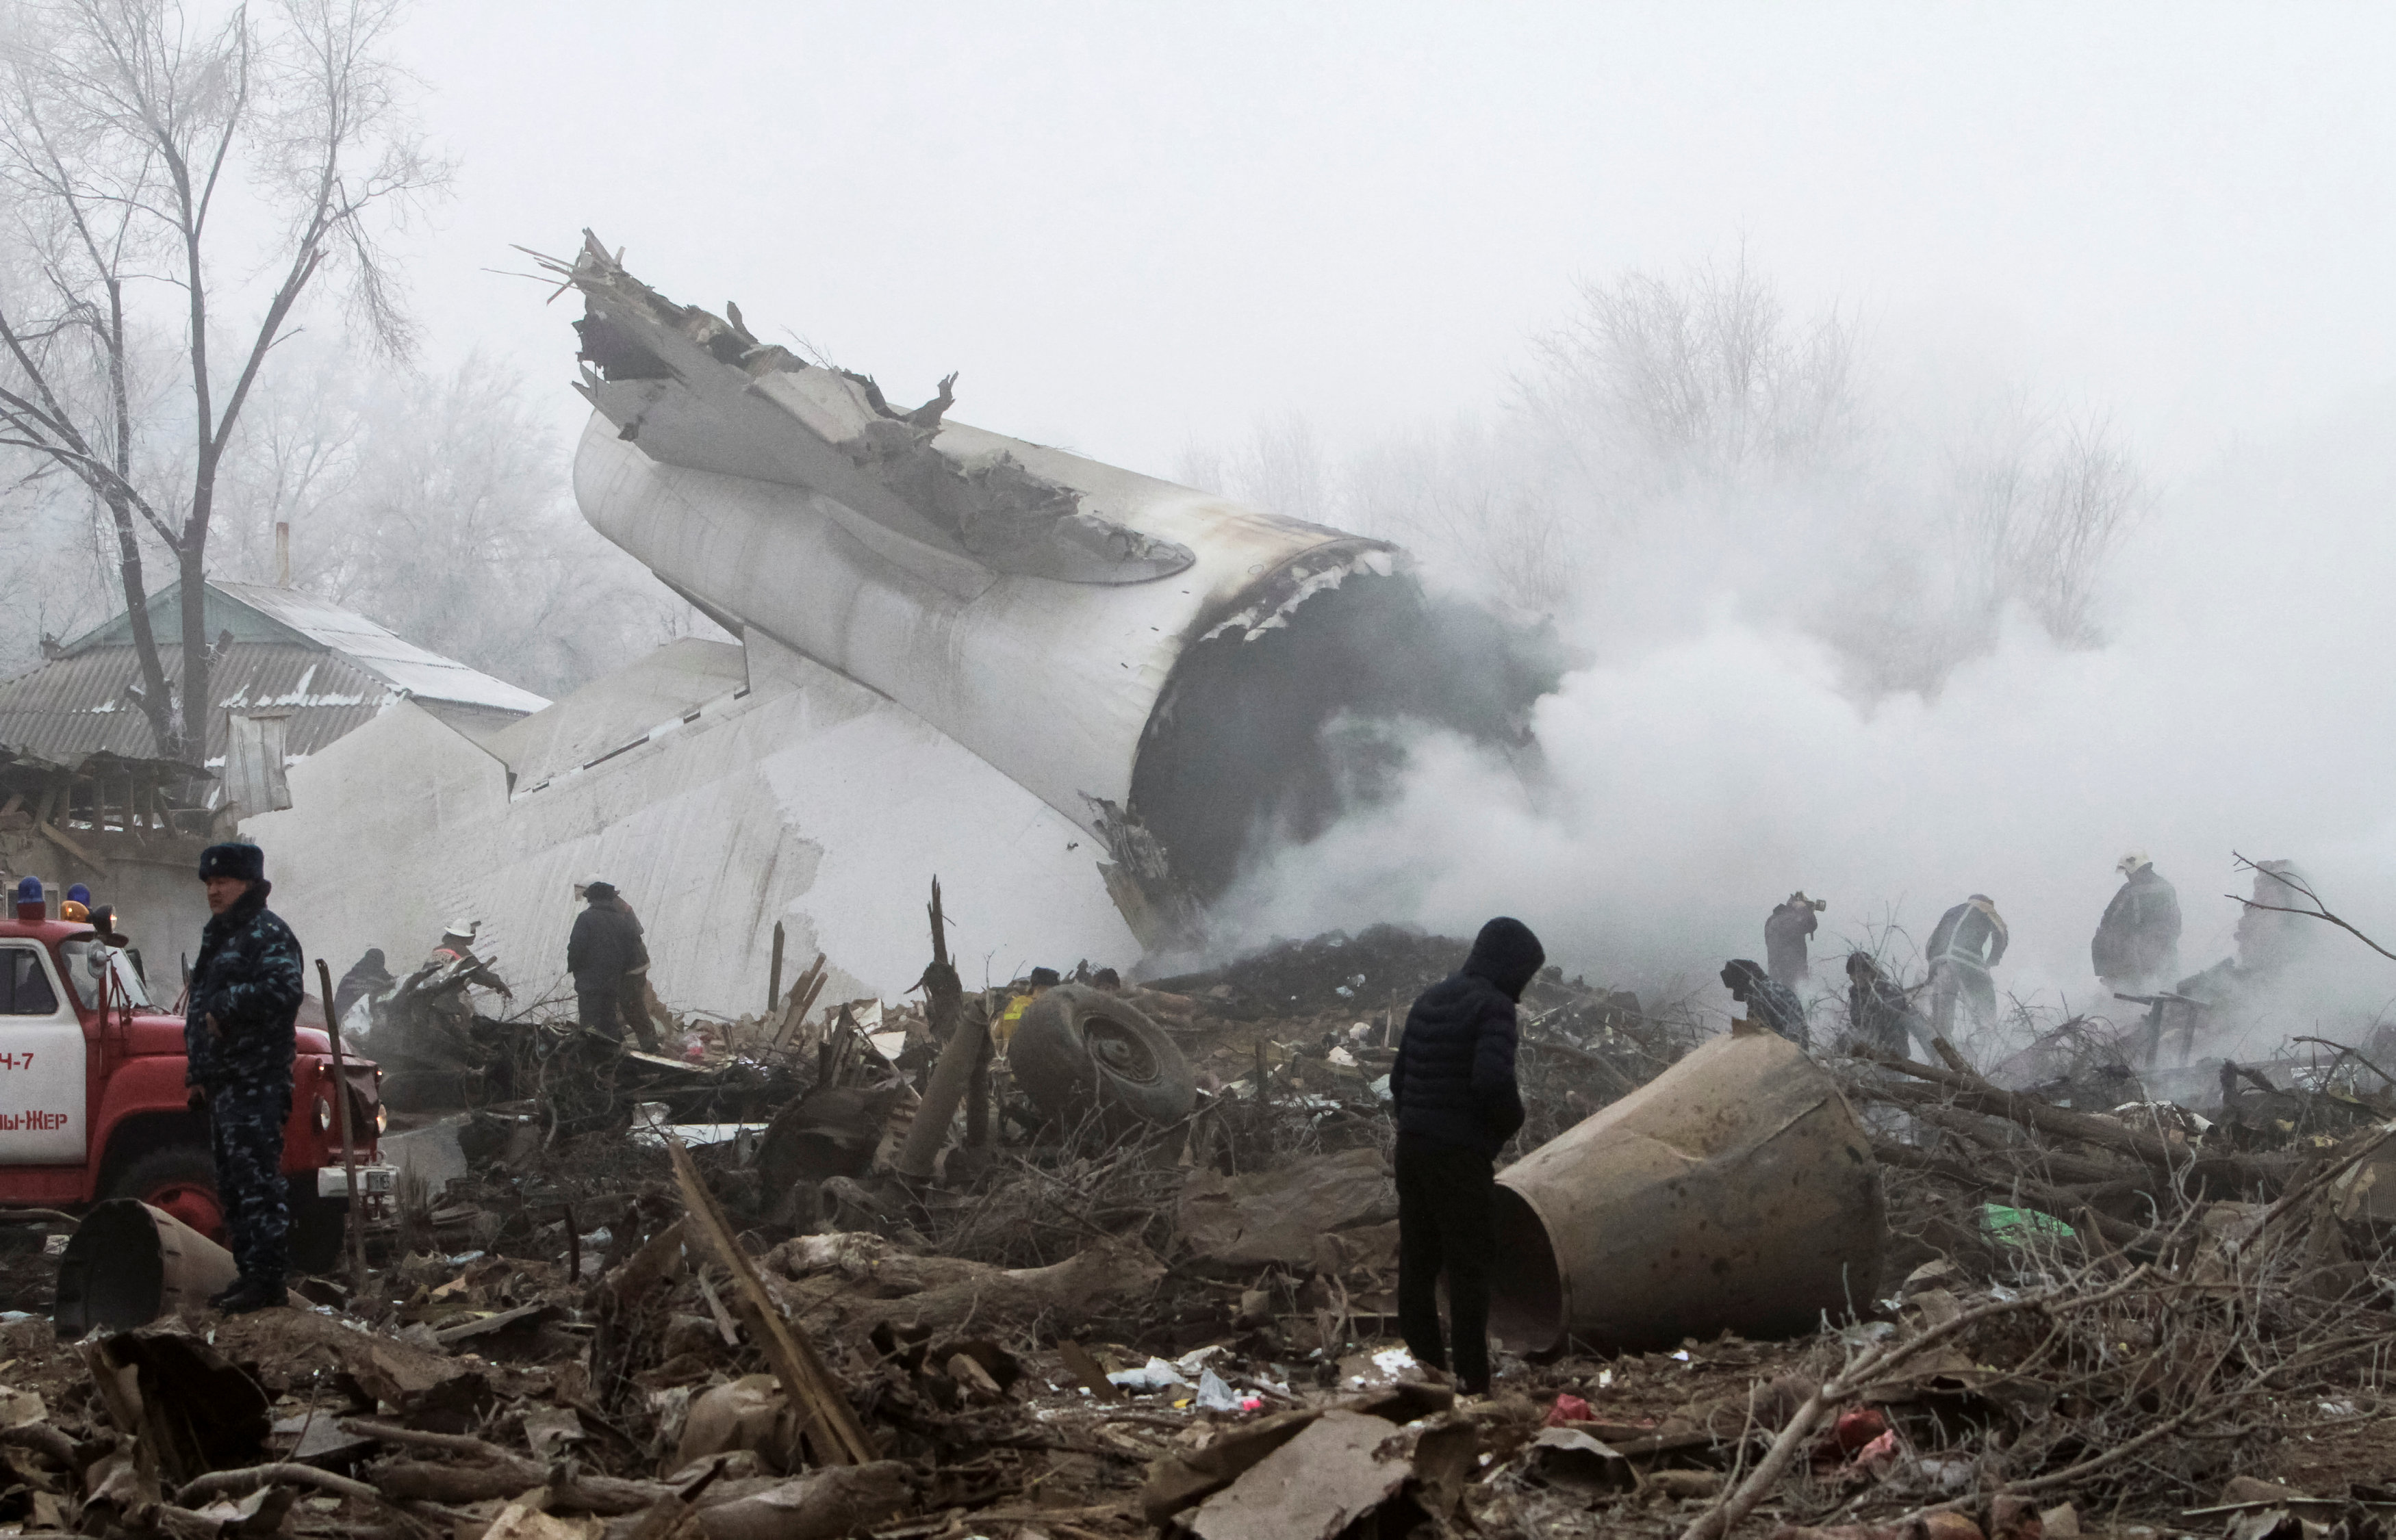 In Pictures: Turkish cargo plane crashes in Kyrgyzstan